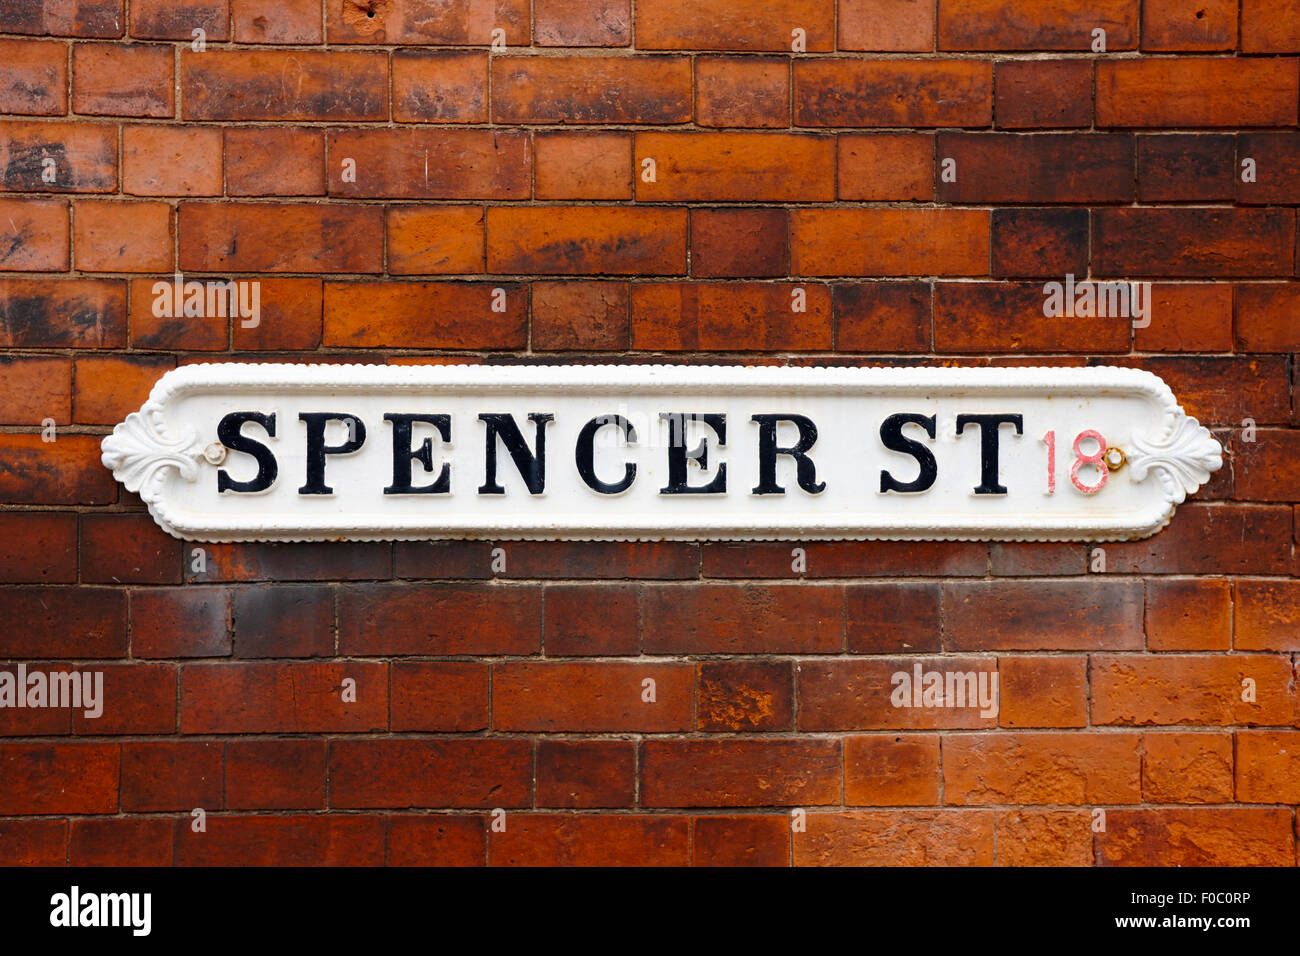 victorian metal street sign for spencer street on red brick building in the jewellery quarter Birmingham UK - Stock Image